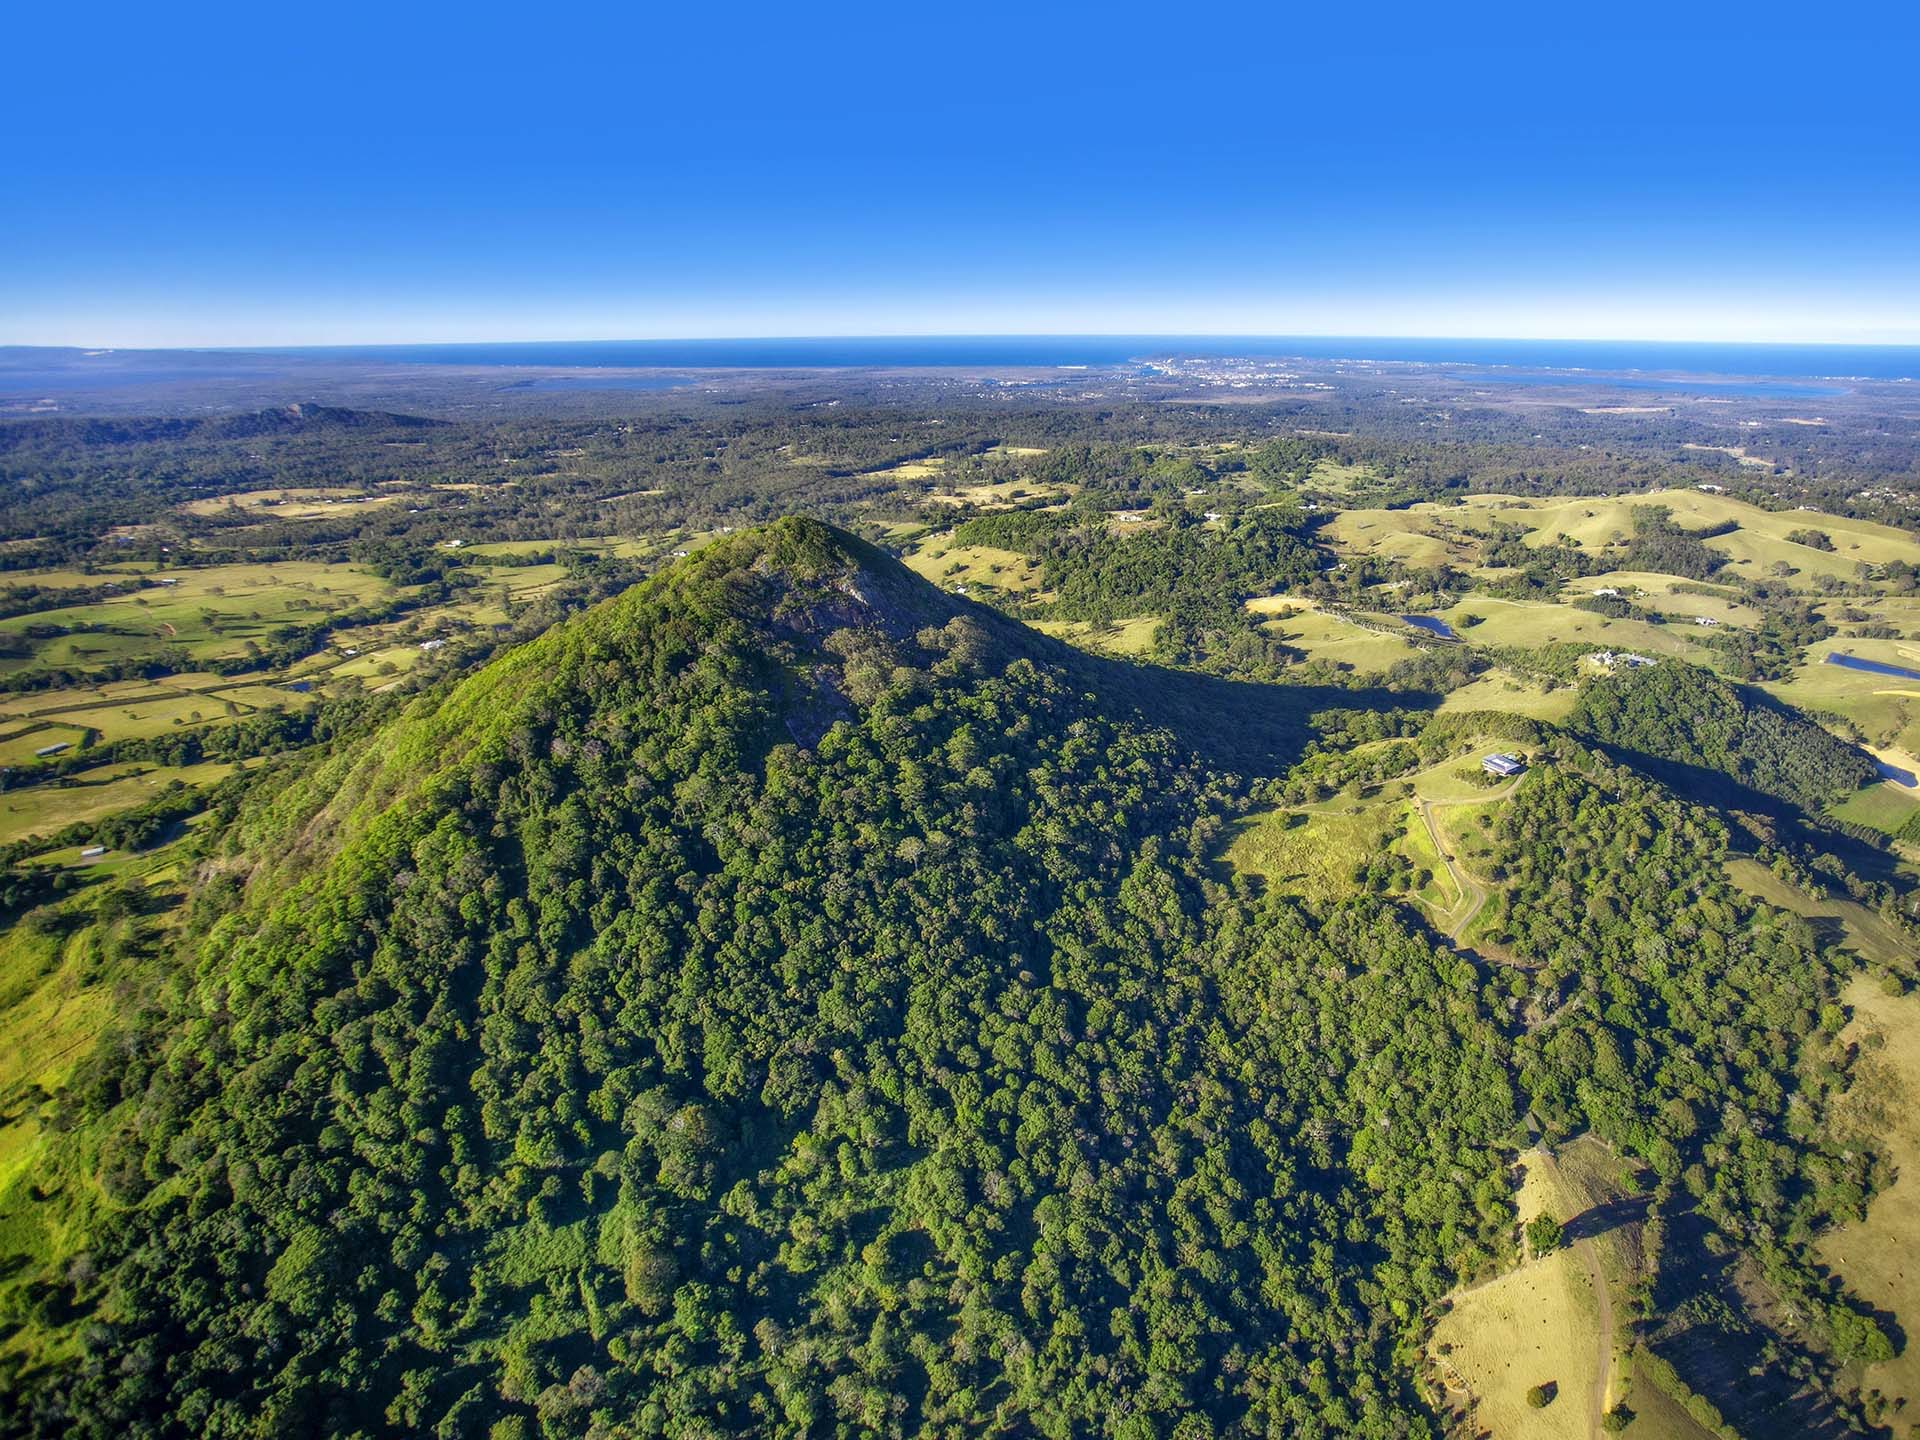 Arial view of Noosa Hinterland